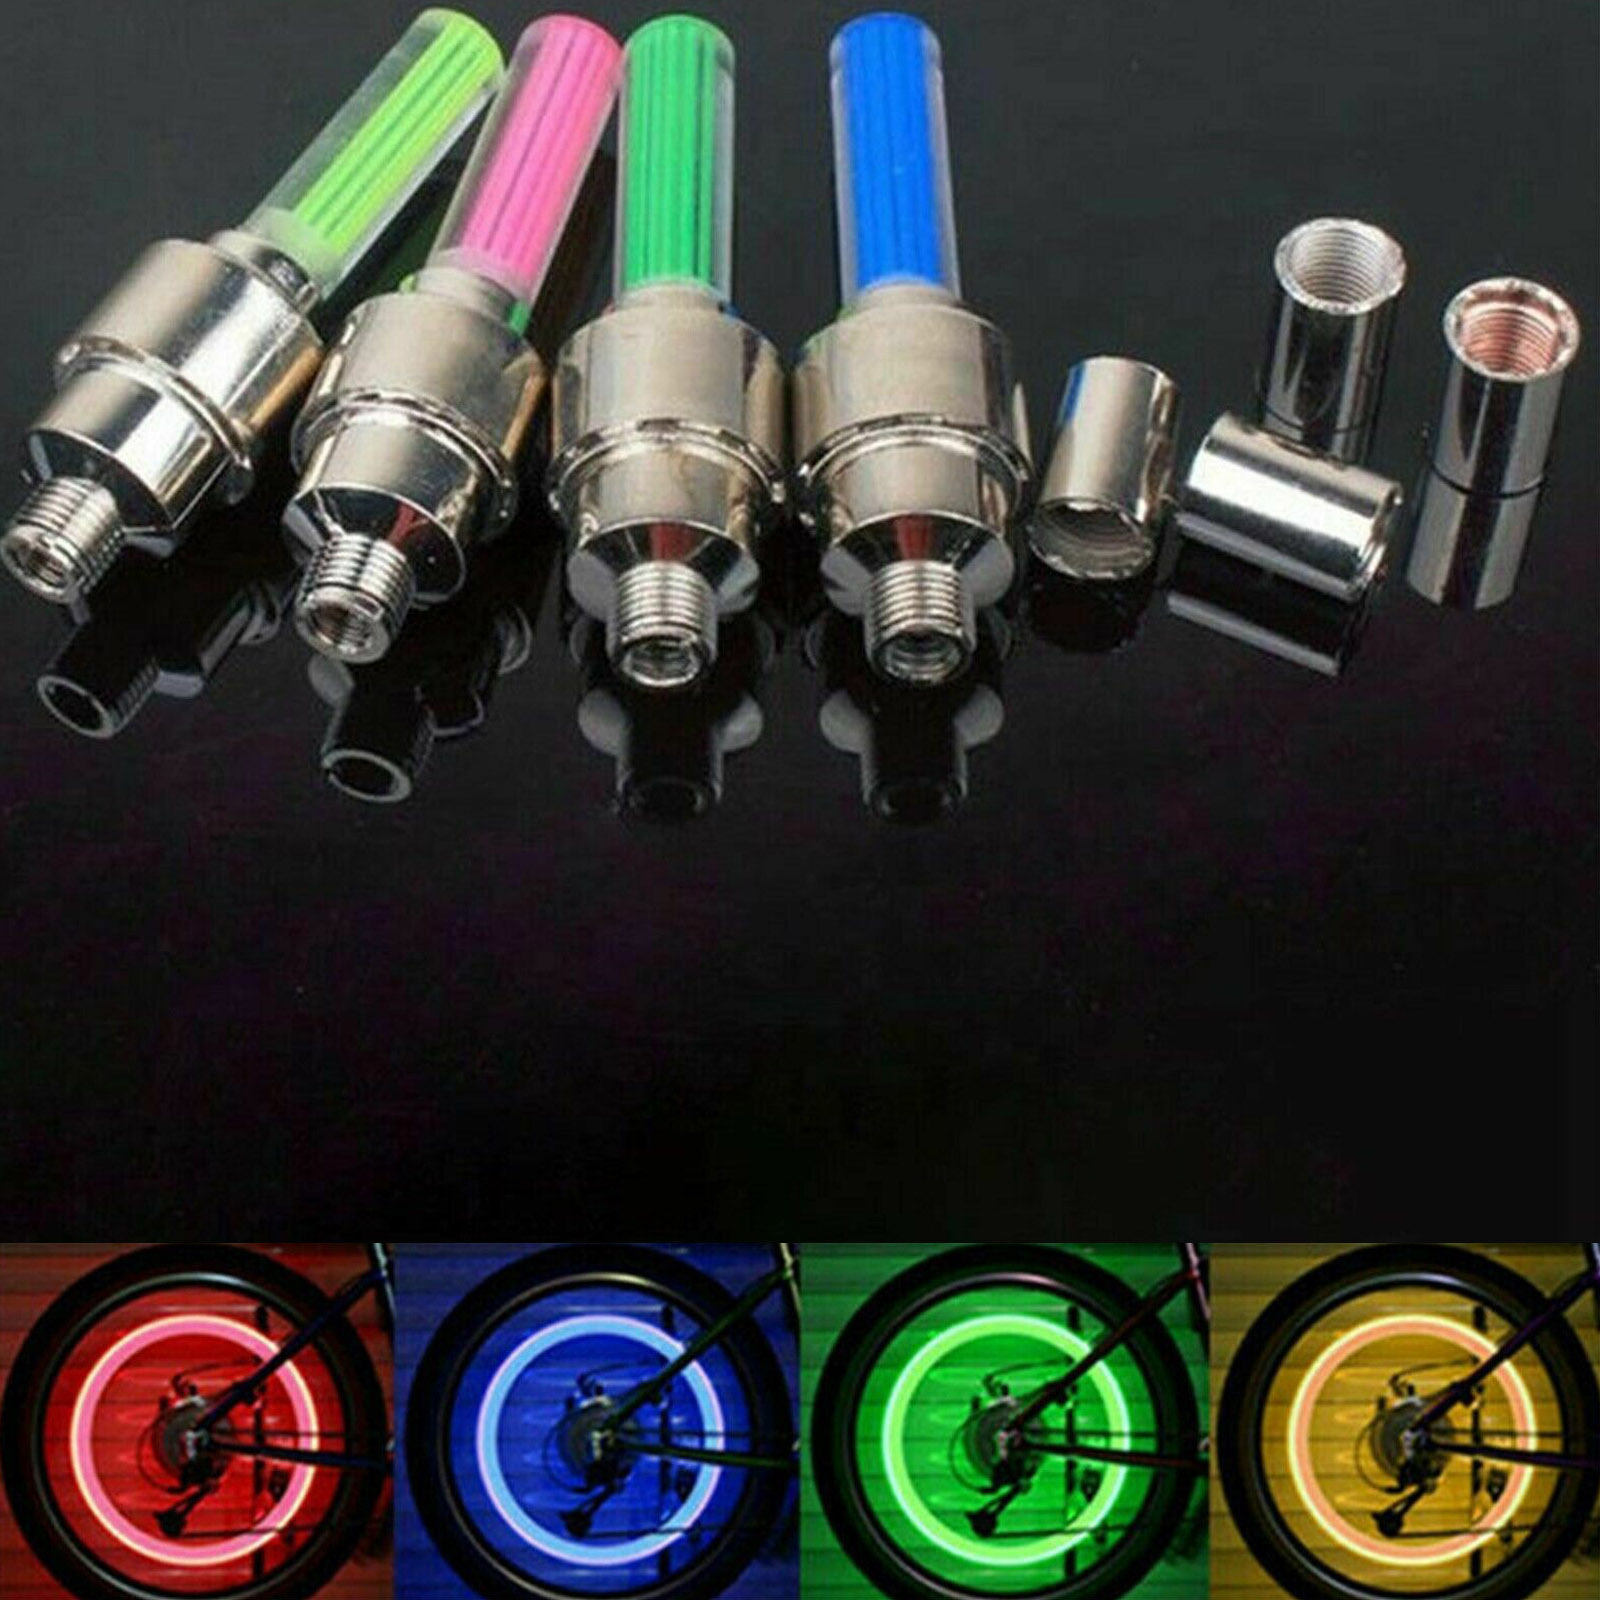 1XNeon LED Lamp Flash Tyre Wheel Valve Cap Light For Car Bike Bicycle Motorcycle